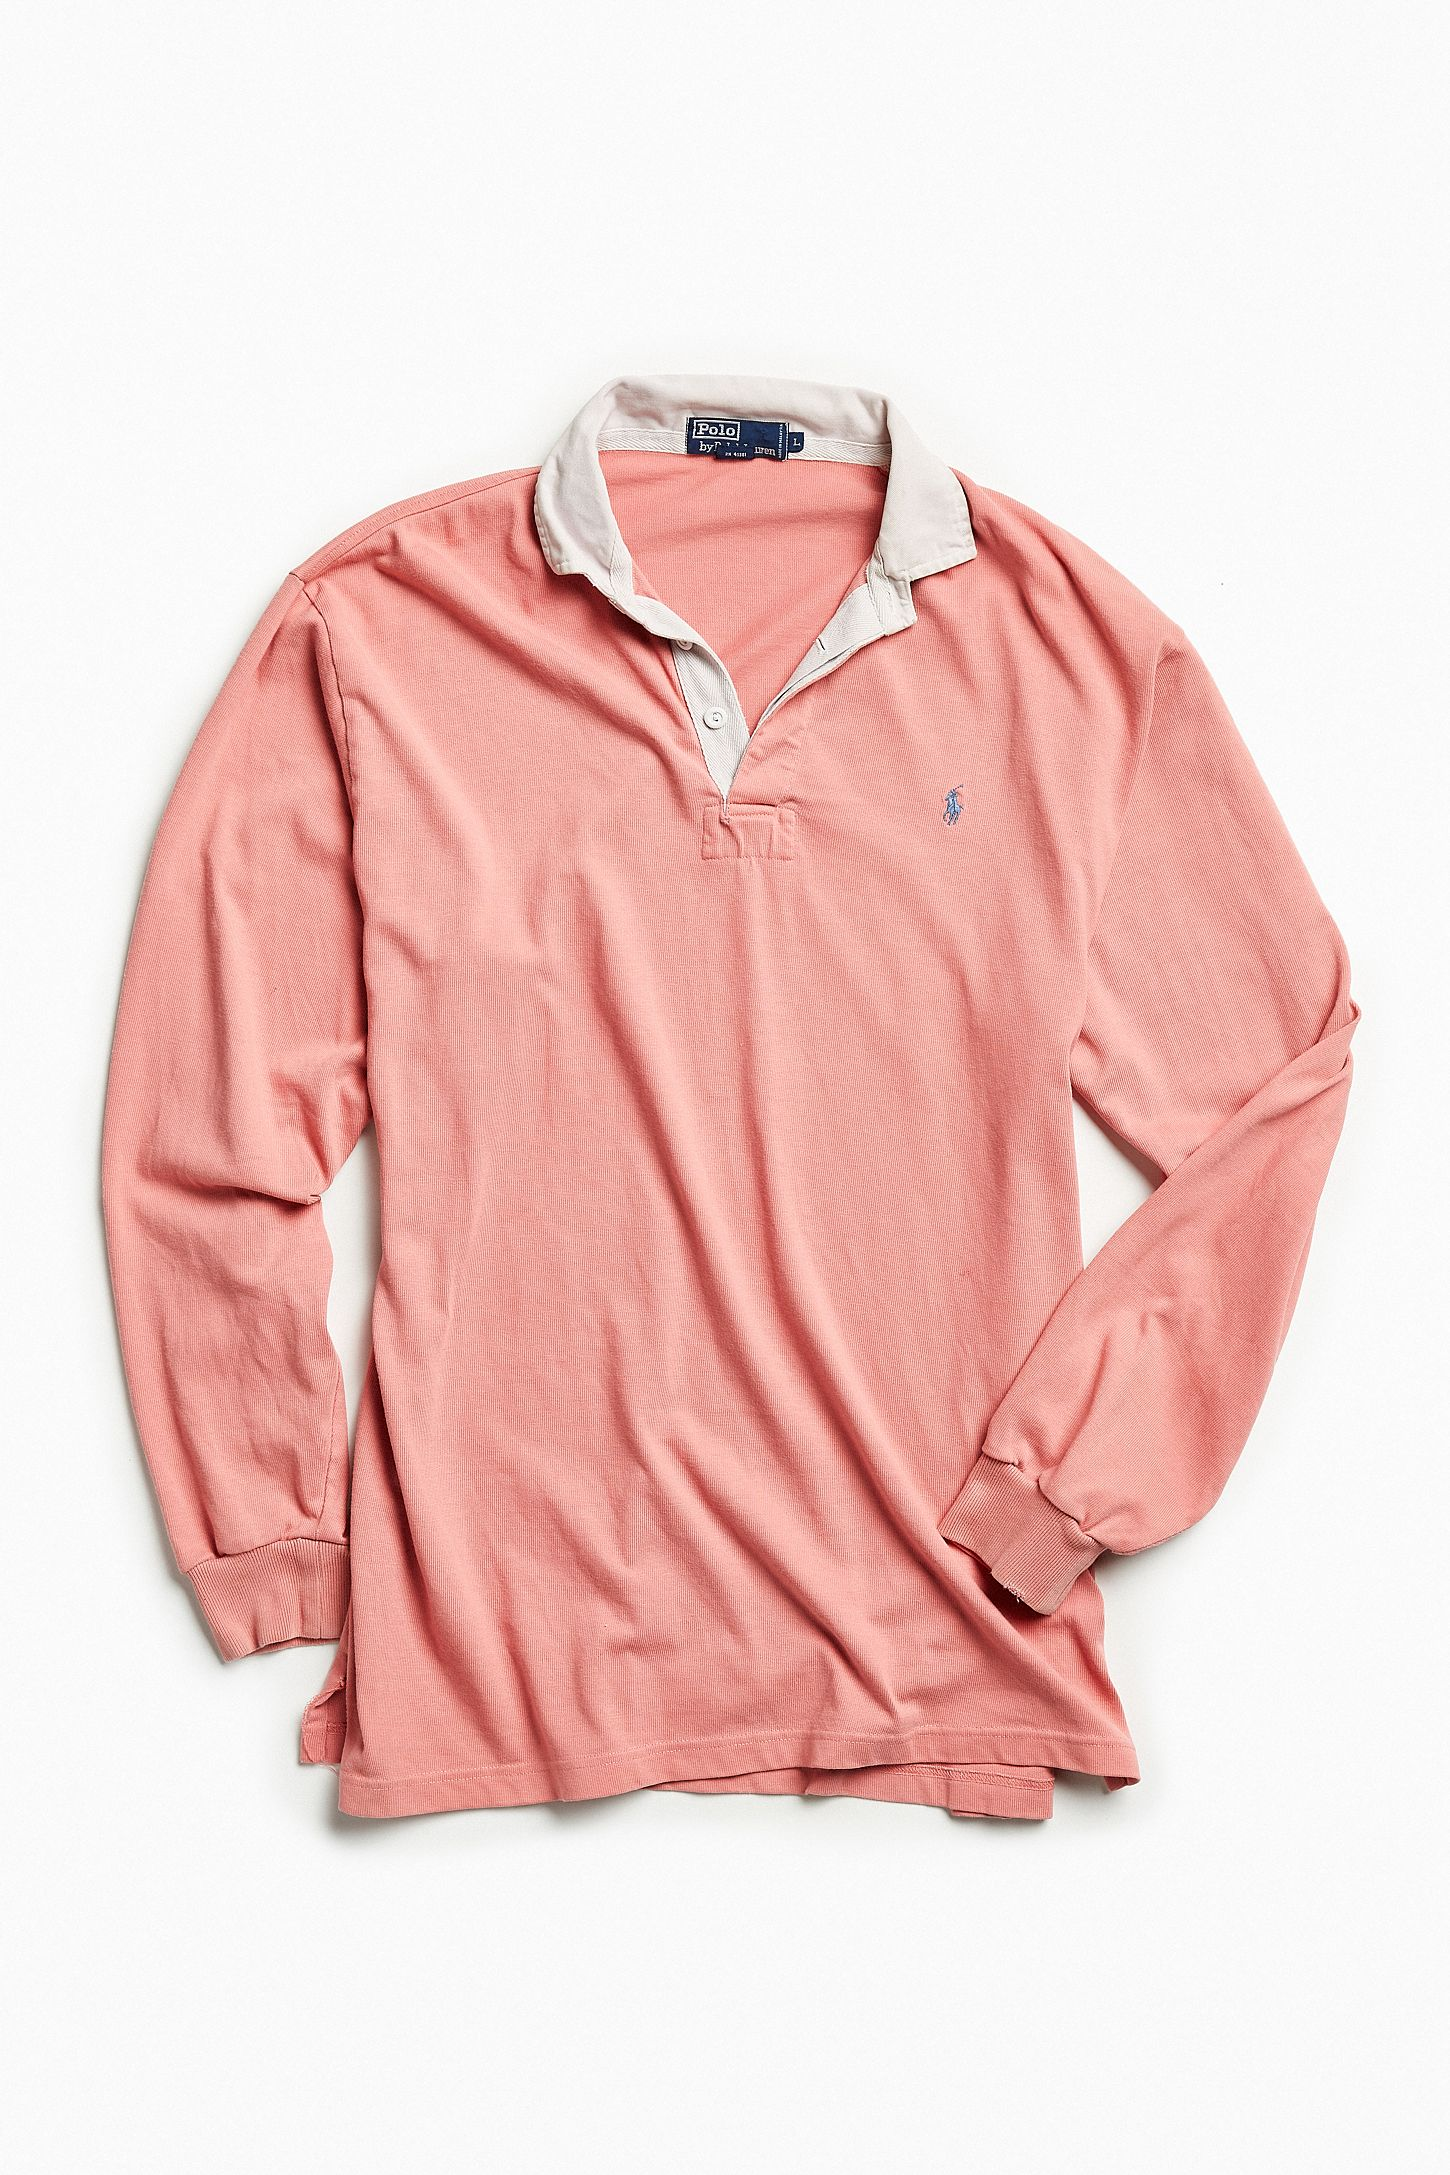 Vintage Polo Ralph Lauren Rose Rugby Shirt   Urban Outfitters Canada b3776d1b42c